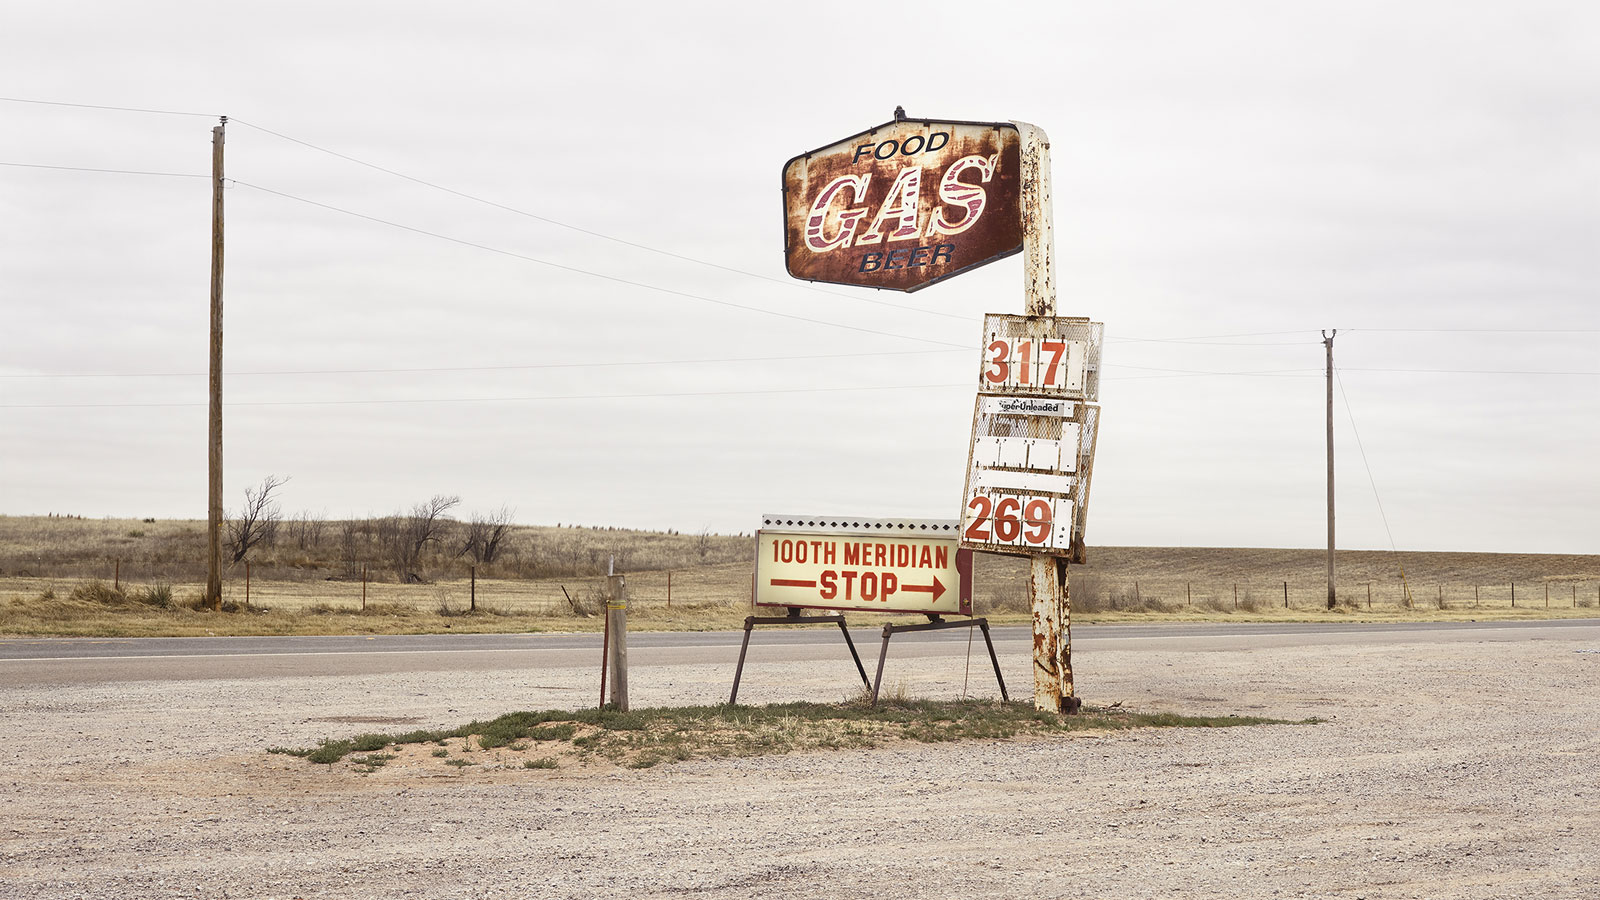 Detail Of/aus: 100th Meridian, USA, 2018, 180 X 140 Cm (also Available In 90 X 70 Cm), Archival Pigment Print, Ed. Of 3 + 1 AP's (5 + 1 AP's) © Roger Eberhard, Courtesy Robert Morat Galerie